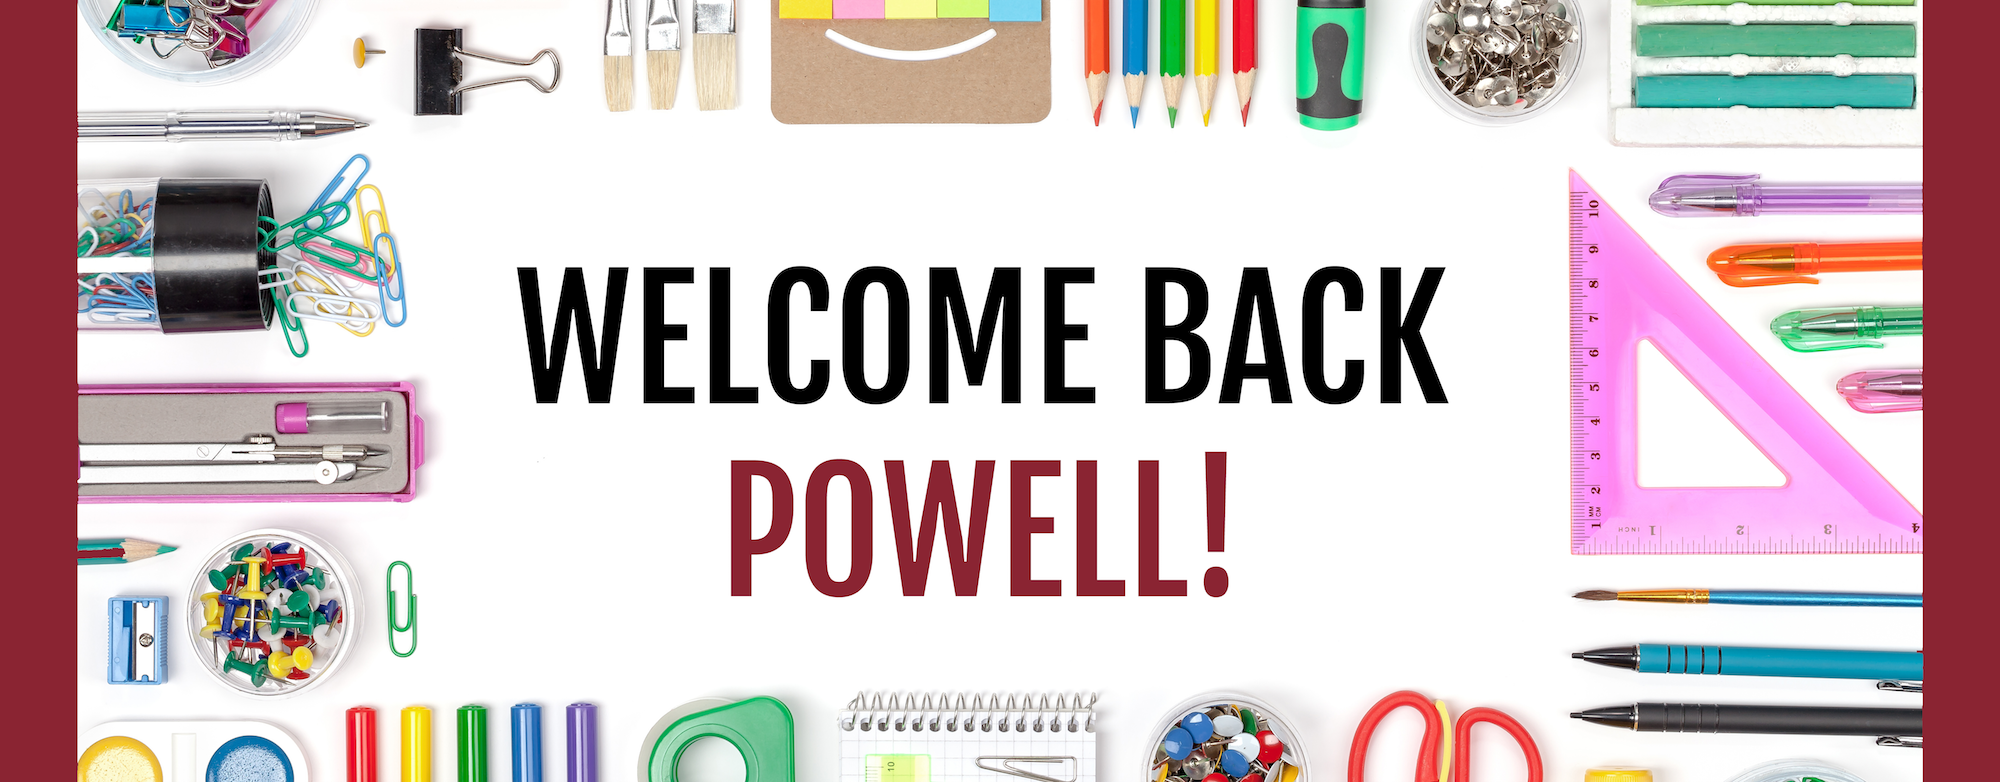 Welcome Back Powell